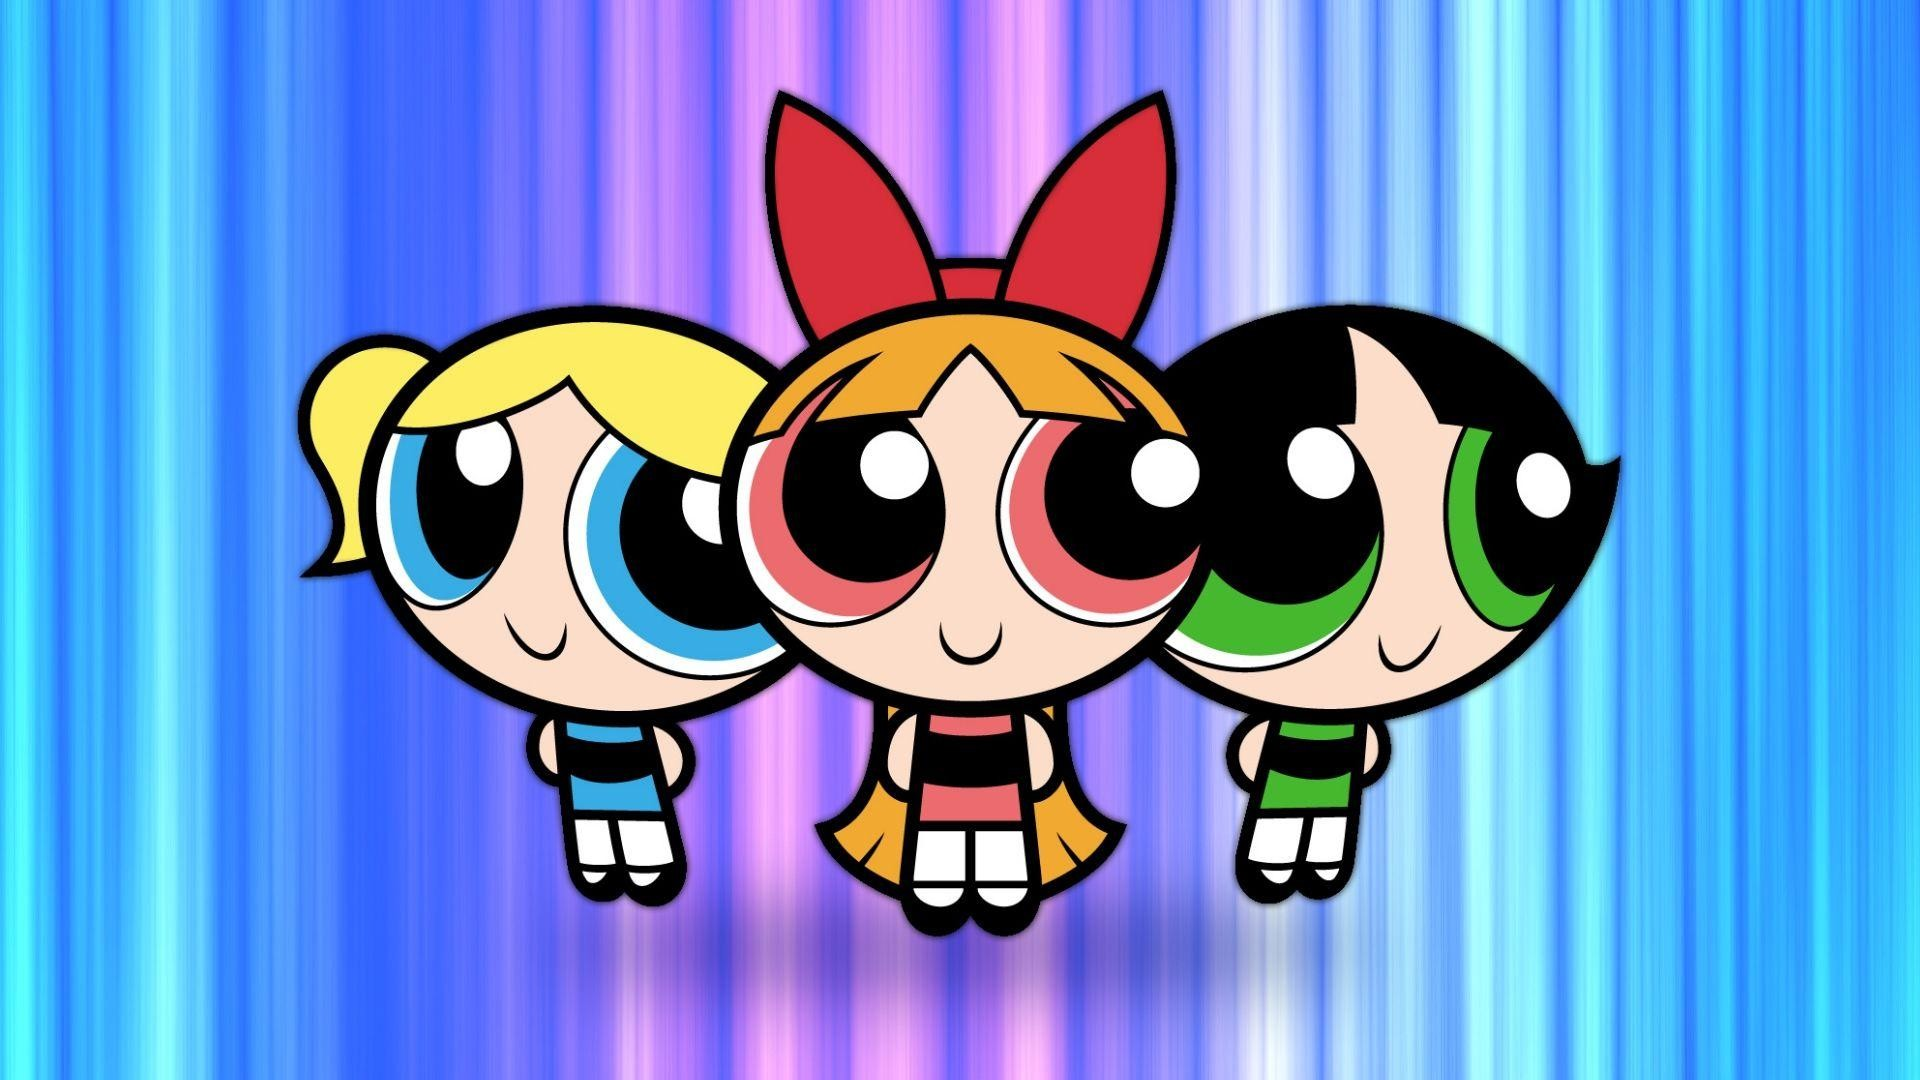 Res: 1920x1080, Powerpuff Girls Blossom and Bubbles - wallpaper.